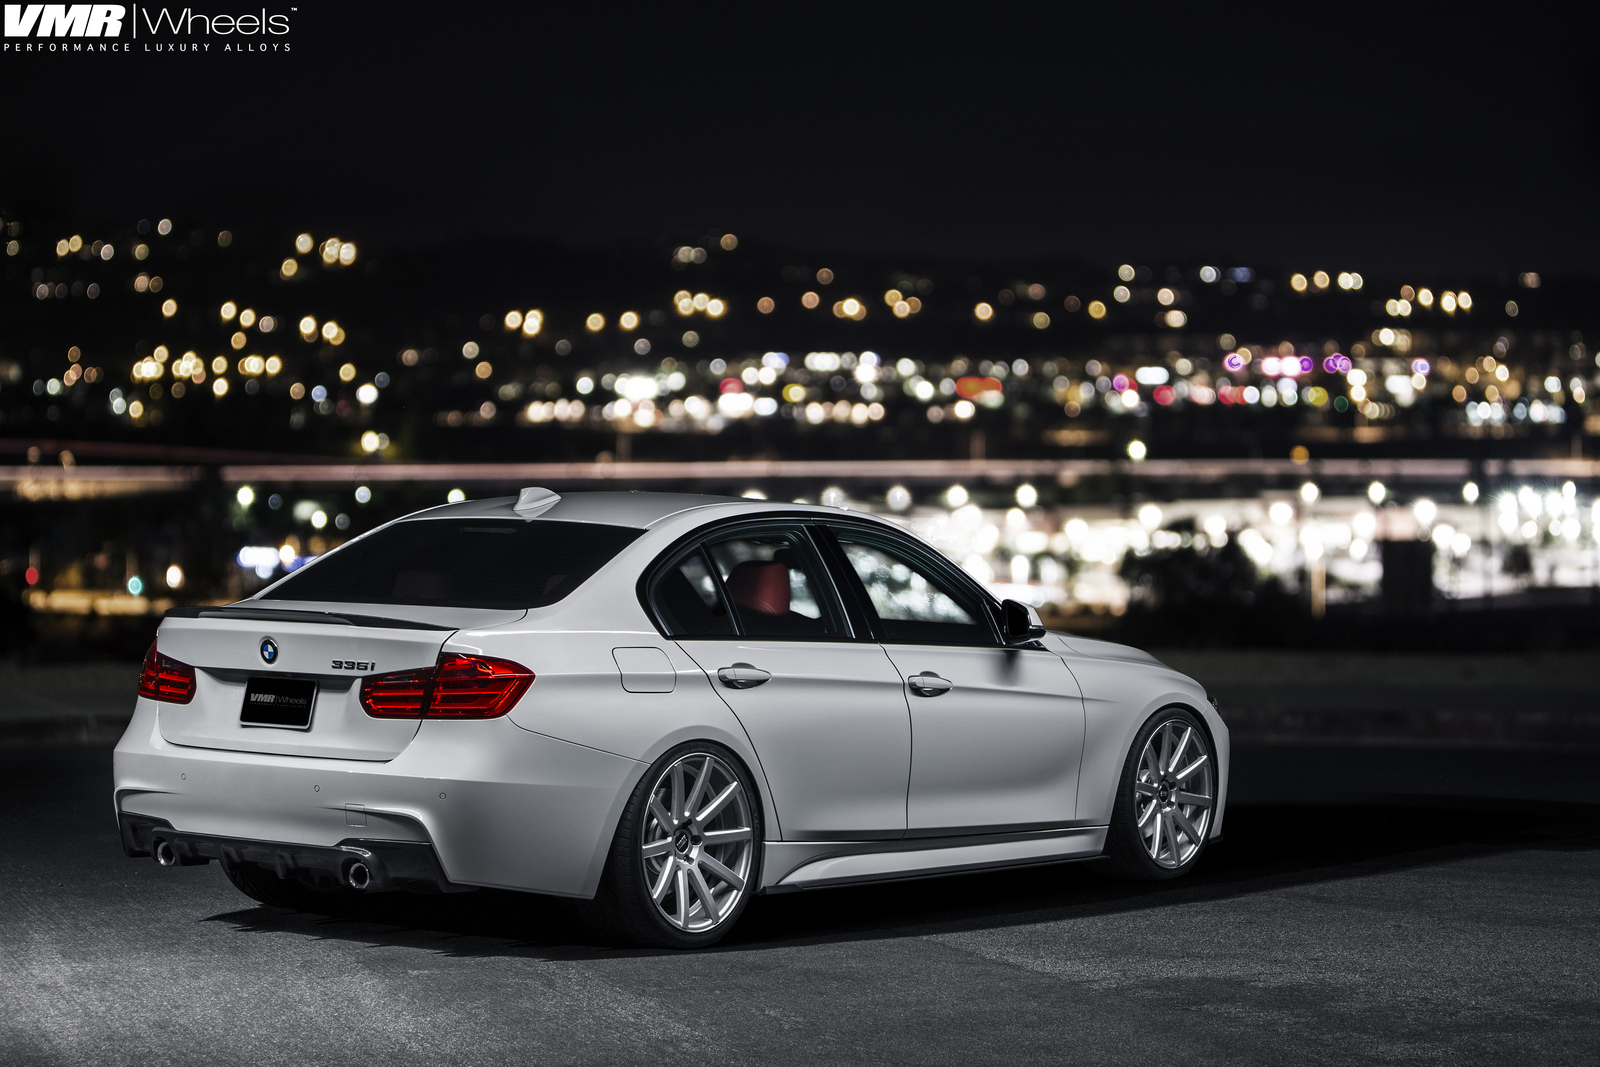 Alpine White BMW F30 335i With V702 Matte Gunmetal Wheels